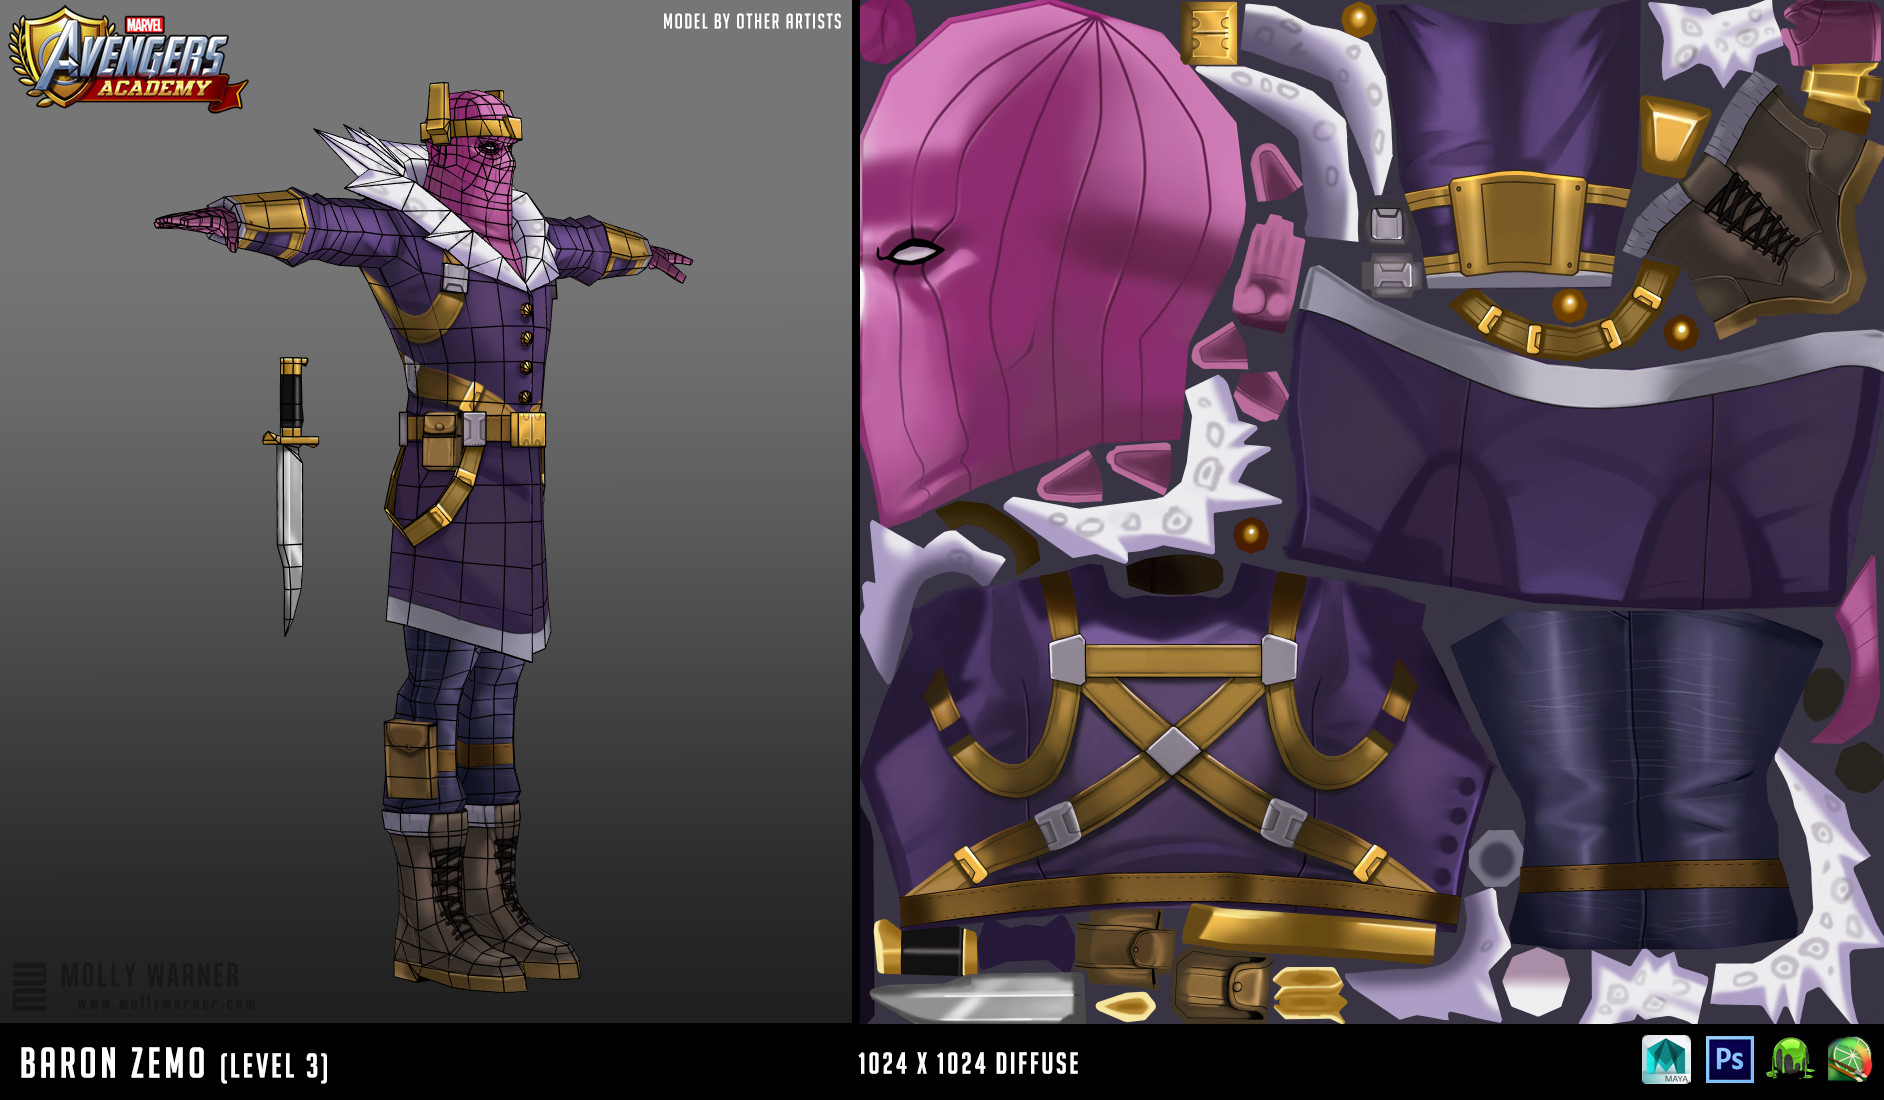 Molly warner 12 baron zemo l3 textures wireframe